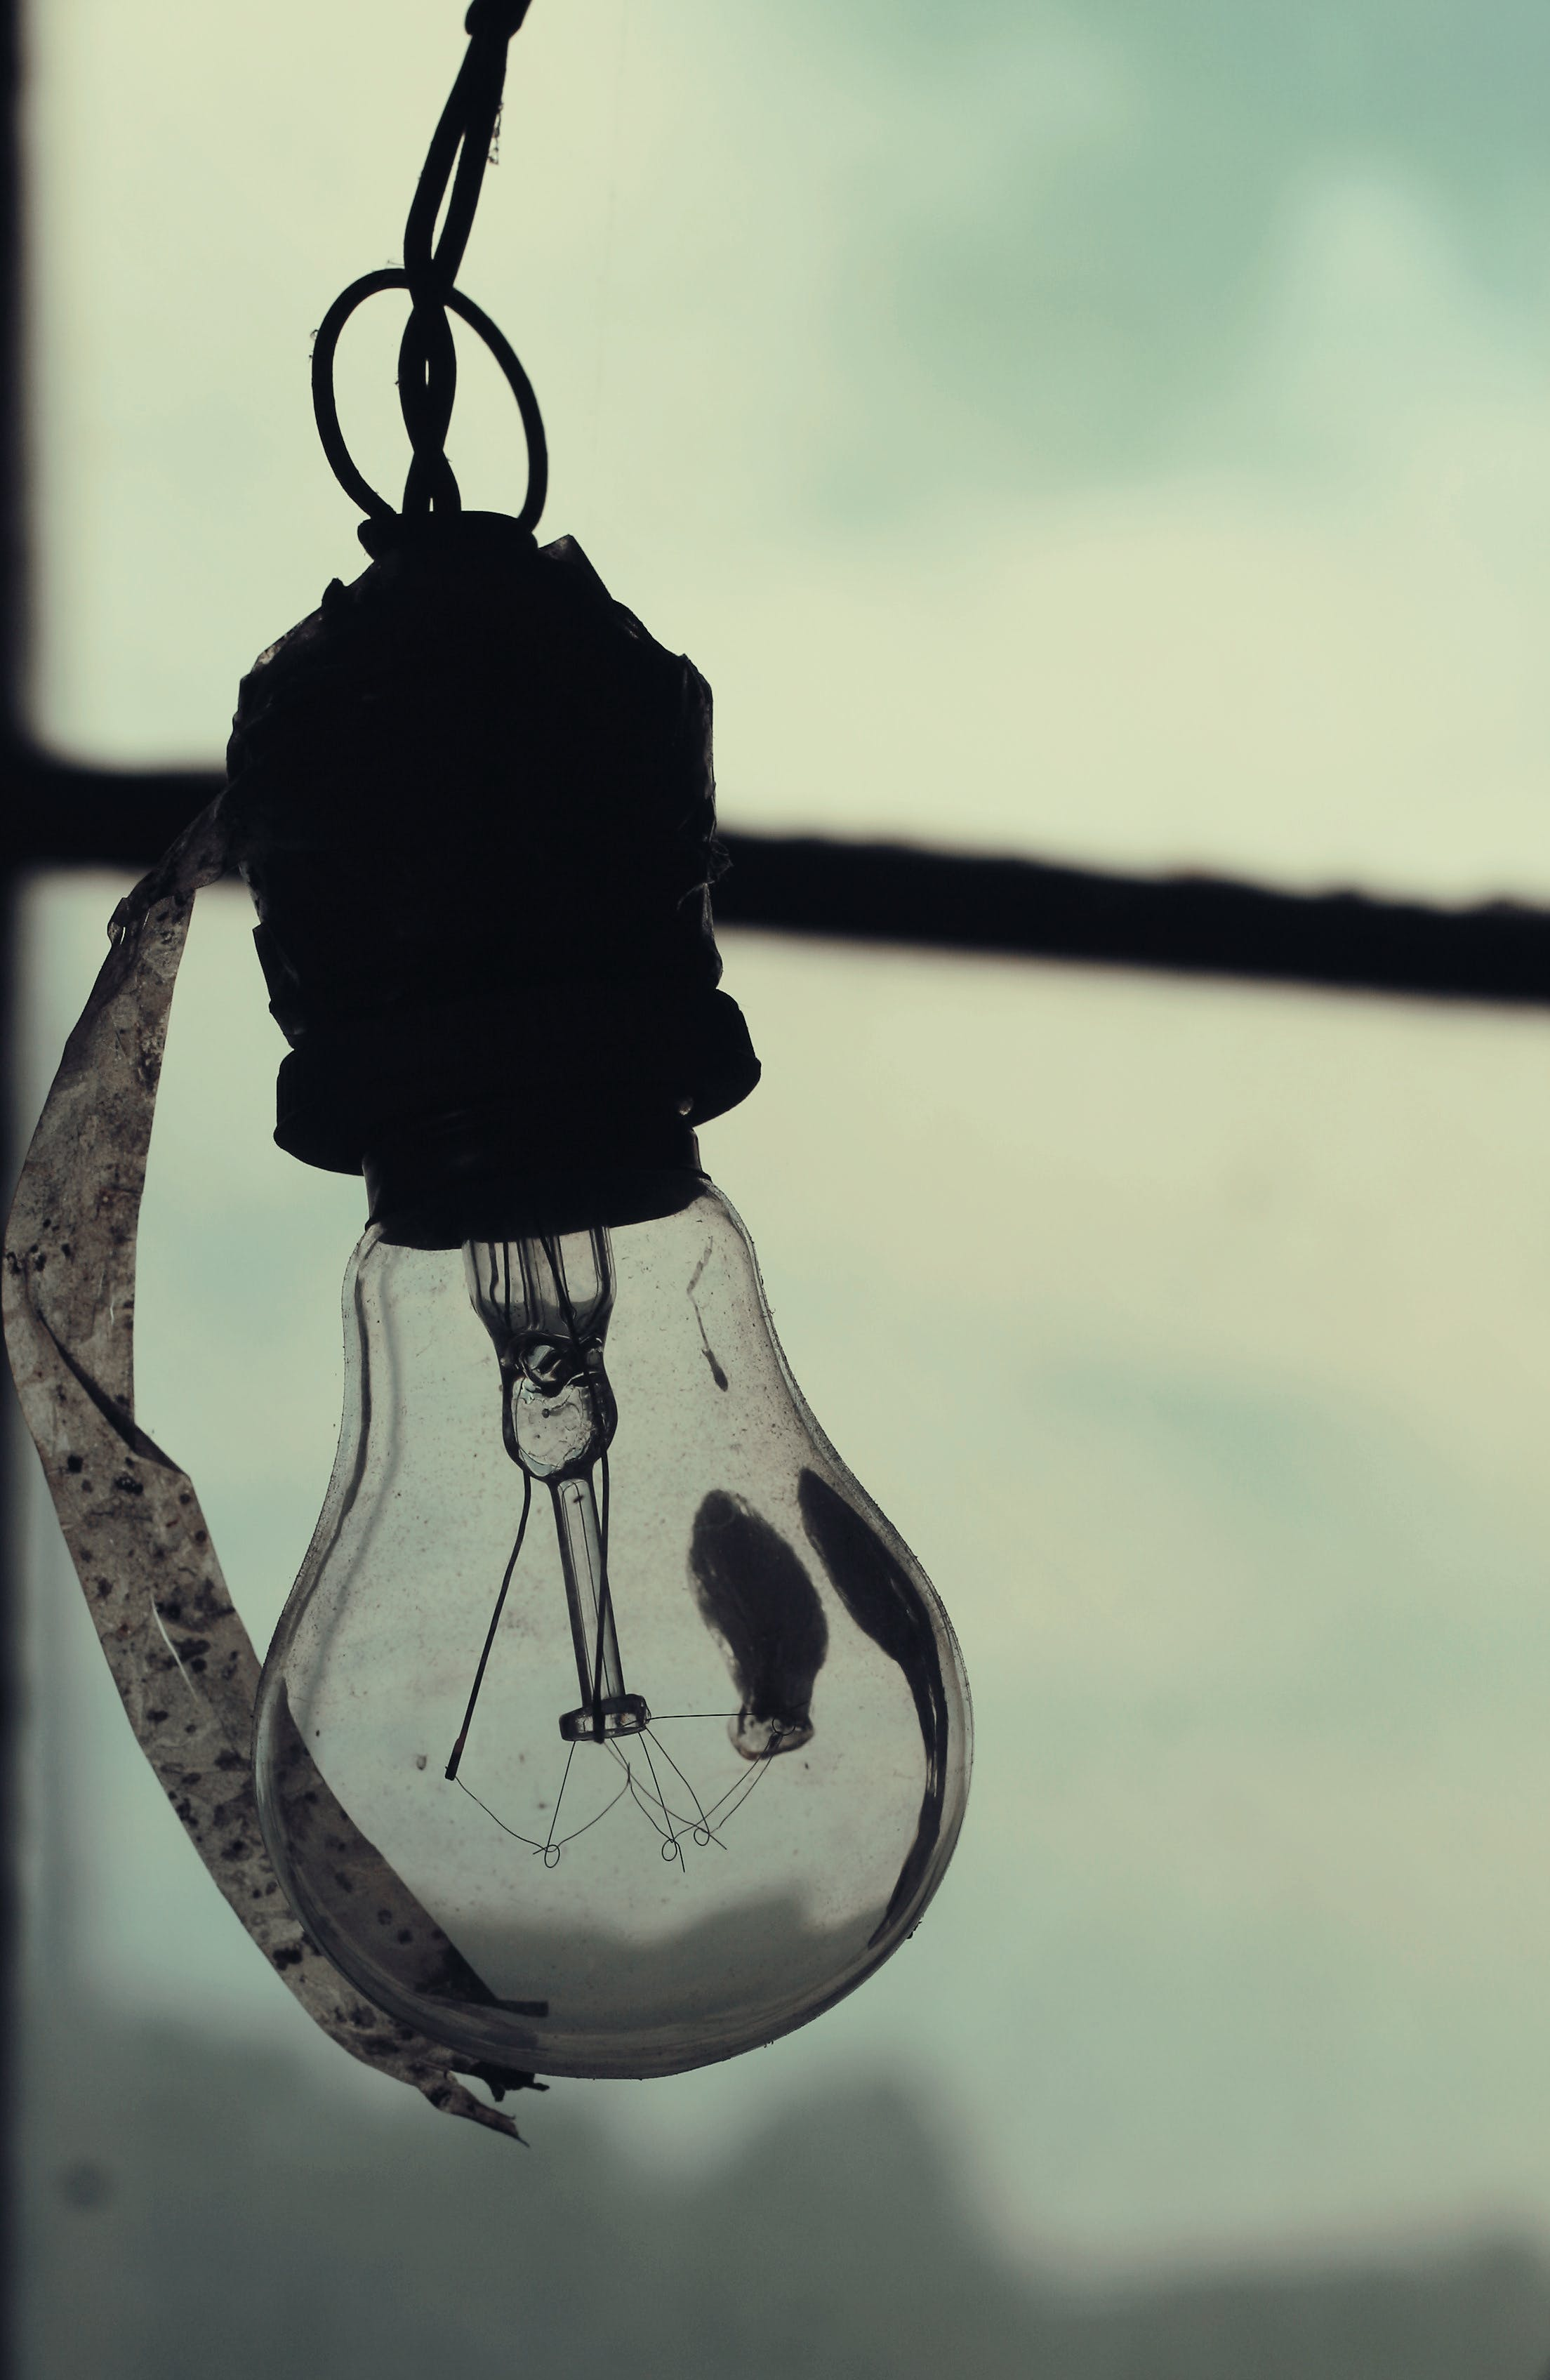 Free stock photo of light bulb, idea, things, electric